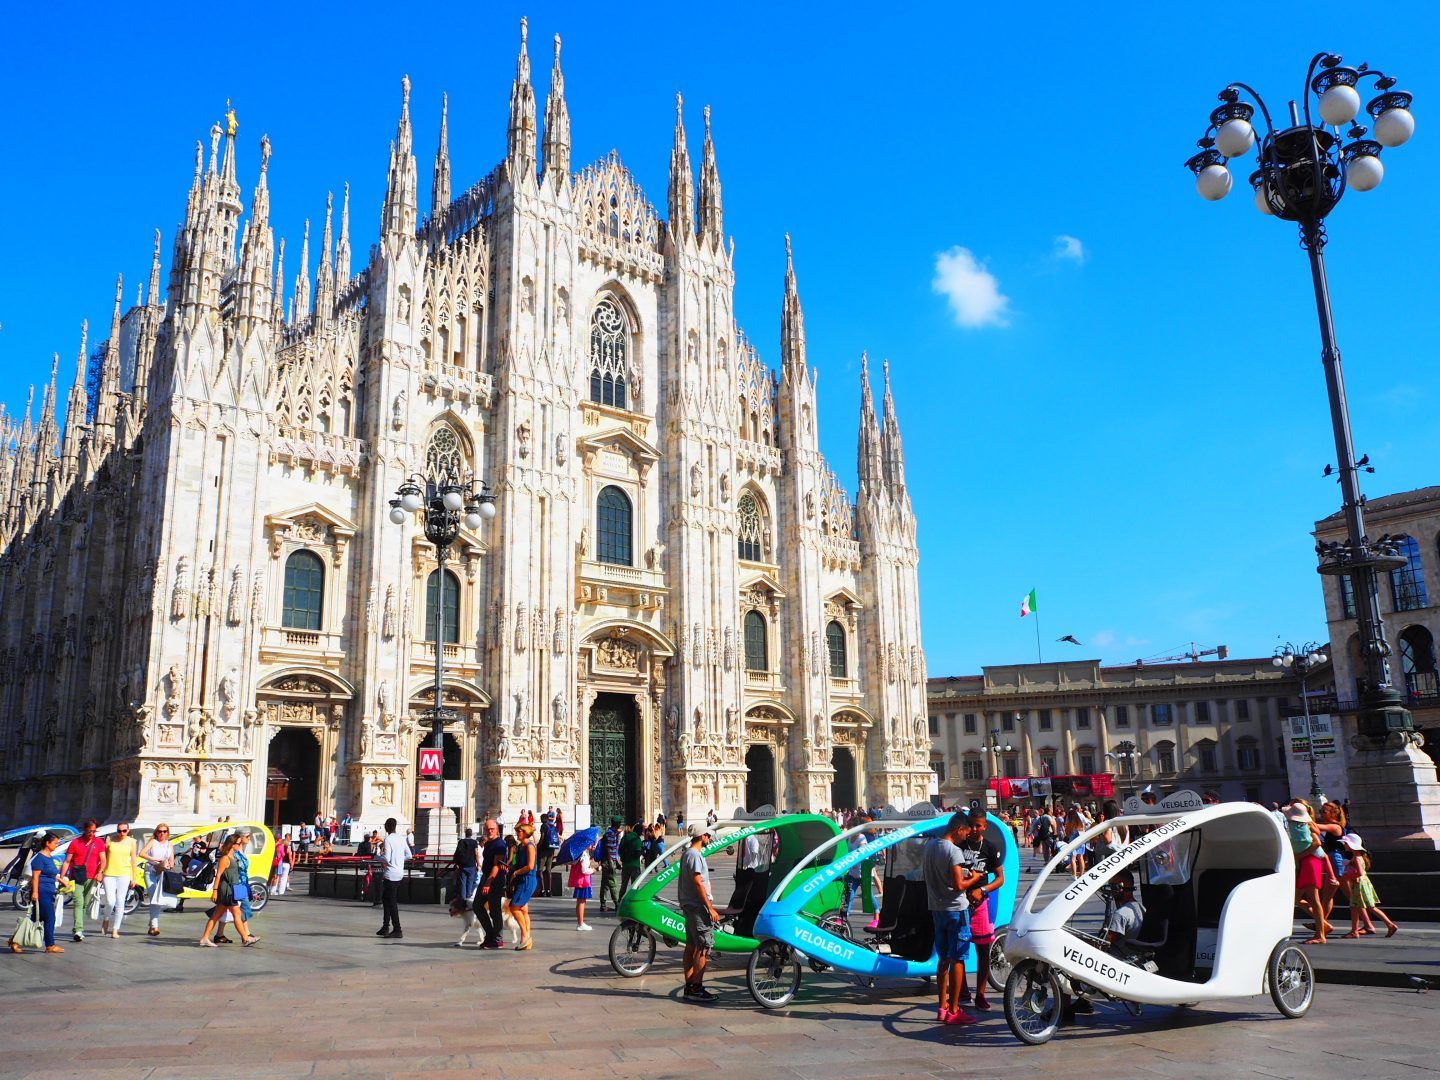 Travel guide in Milan: What to see, Where to eat?